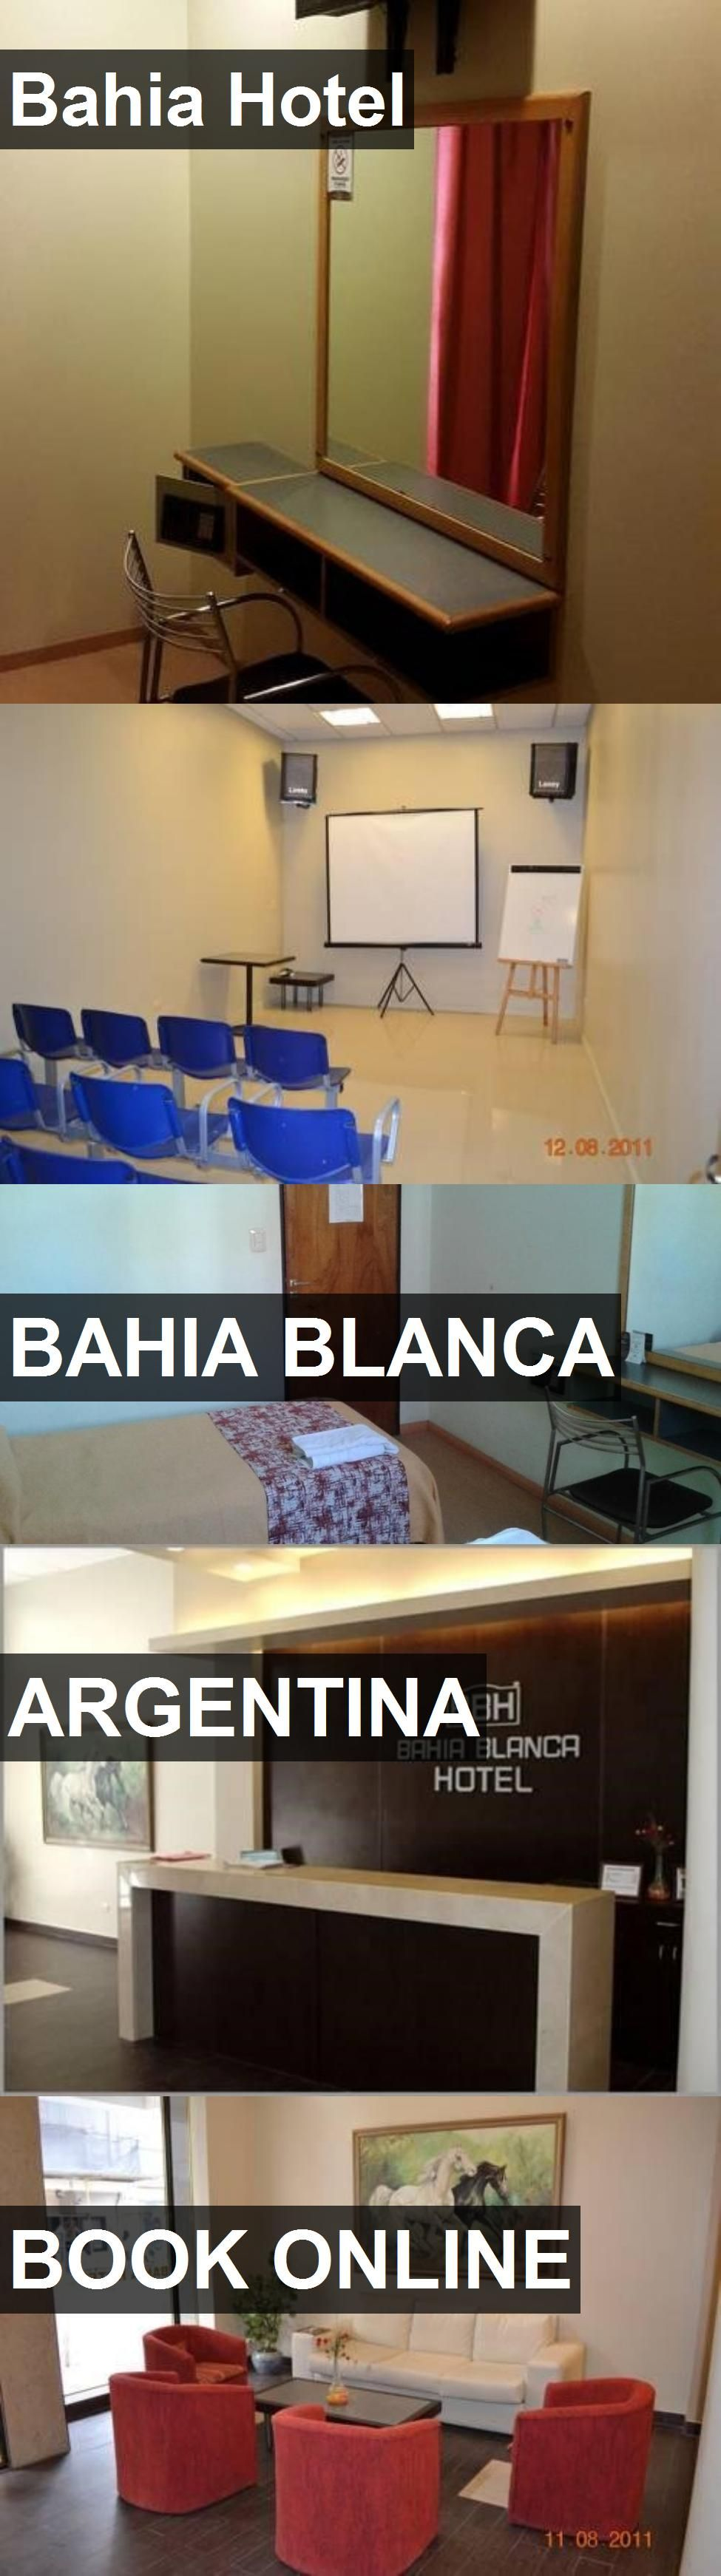 Muebles Firenze Bahia Blanca - Hotel Bahia Hotel In Bahia Blanca Argentina For More Information [mjhdah]https://itinari.imgix.net/activity/images/original/d850a2d4-d802-4ee6-ae03-0285e9a71d00-19787552_235085940345122_4266926734387944744_o.jpg?fm=pjpg&ch=DPR&dpr=2&w=800&fit=clip&trim=auto&auto=enhance